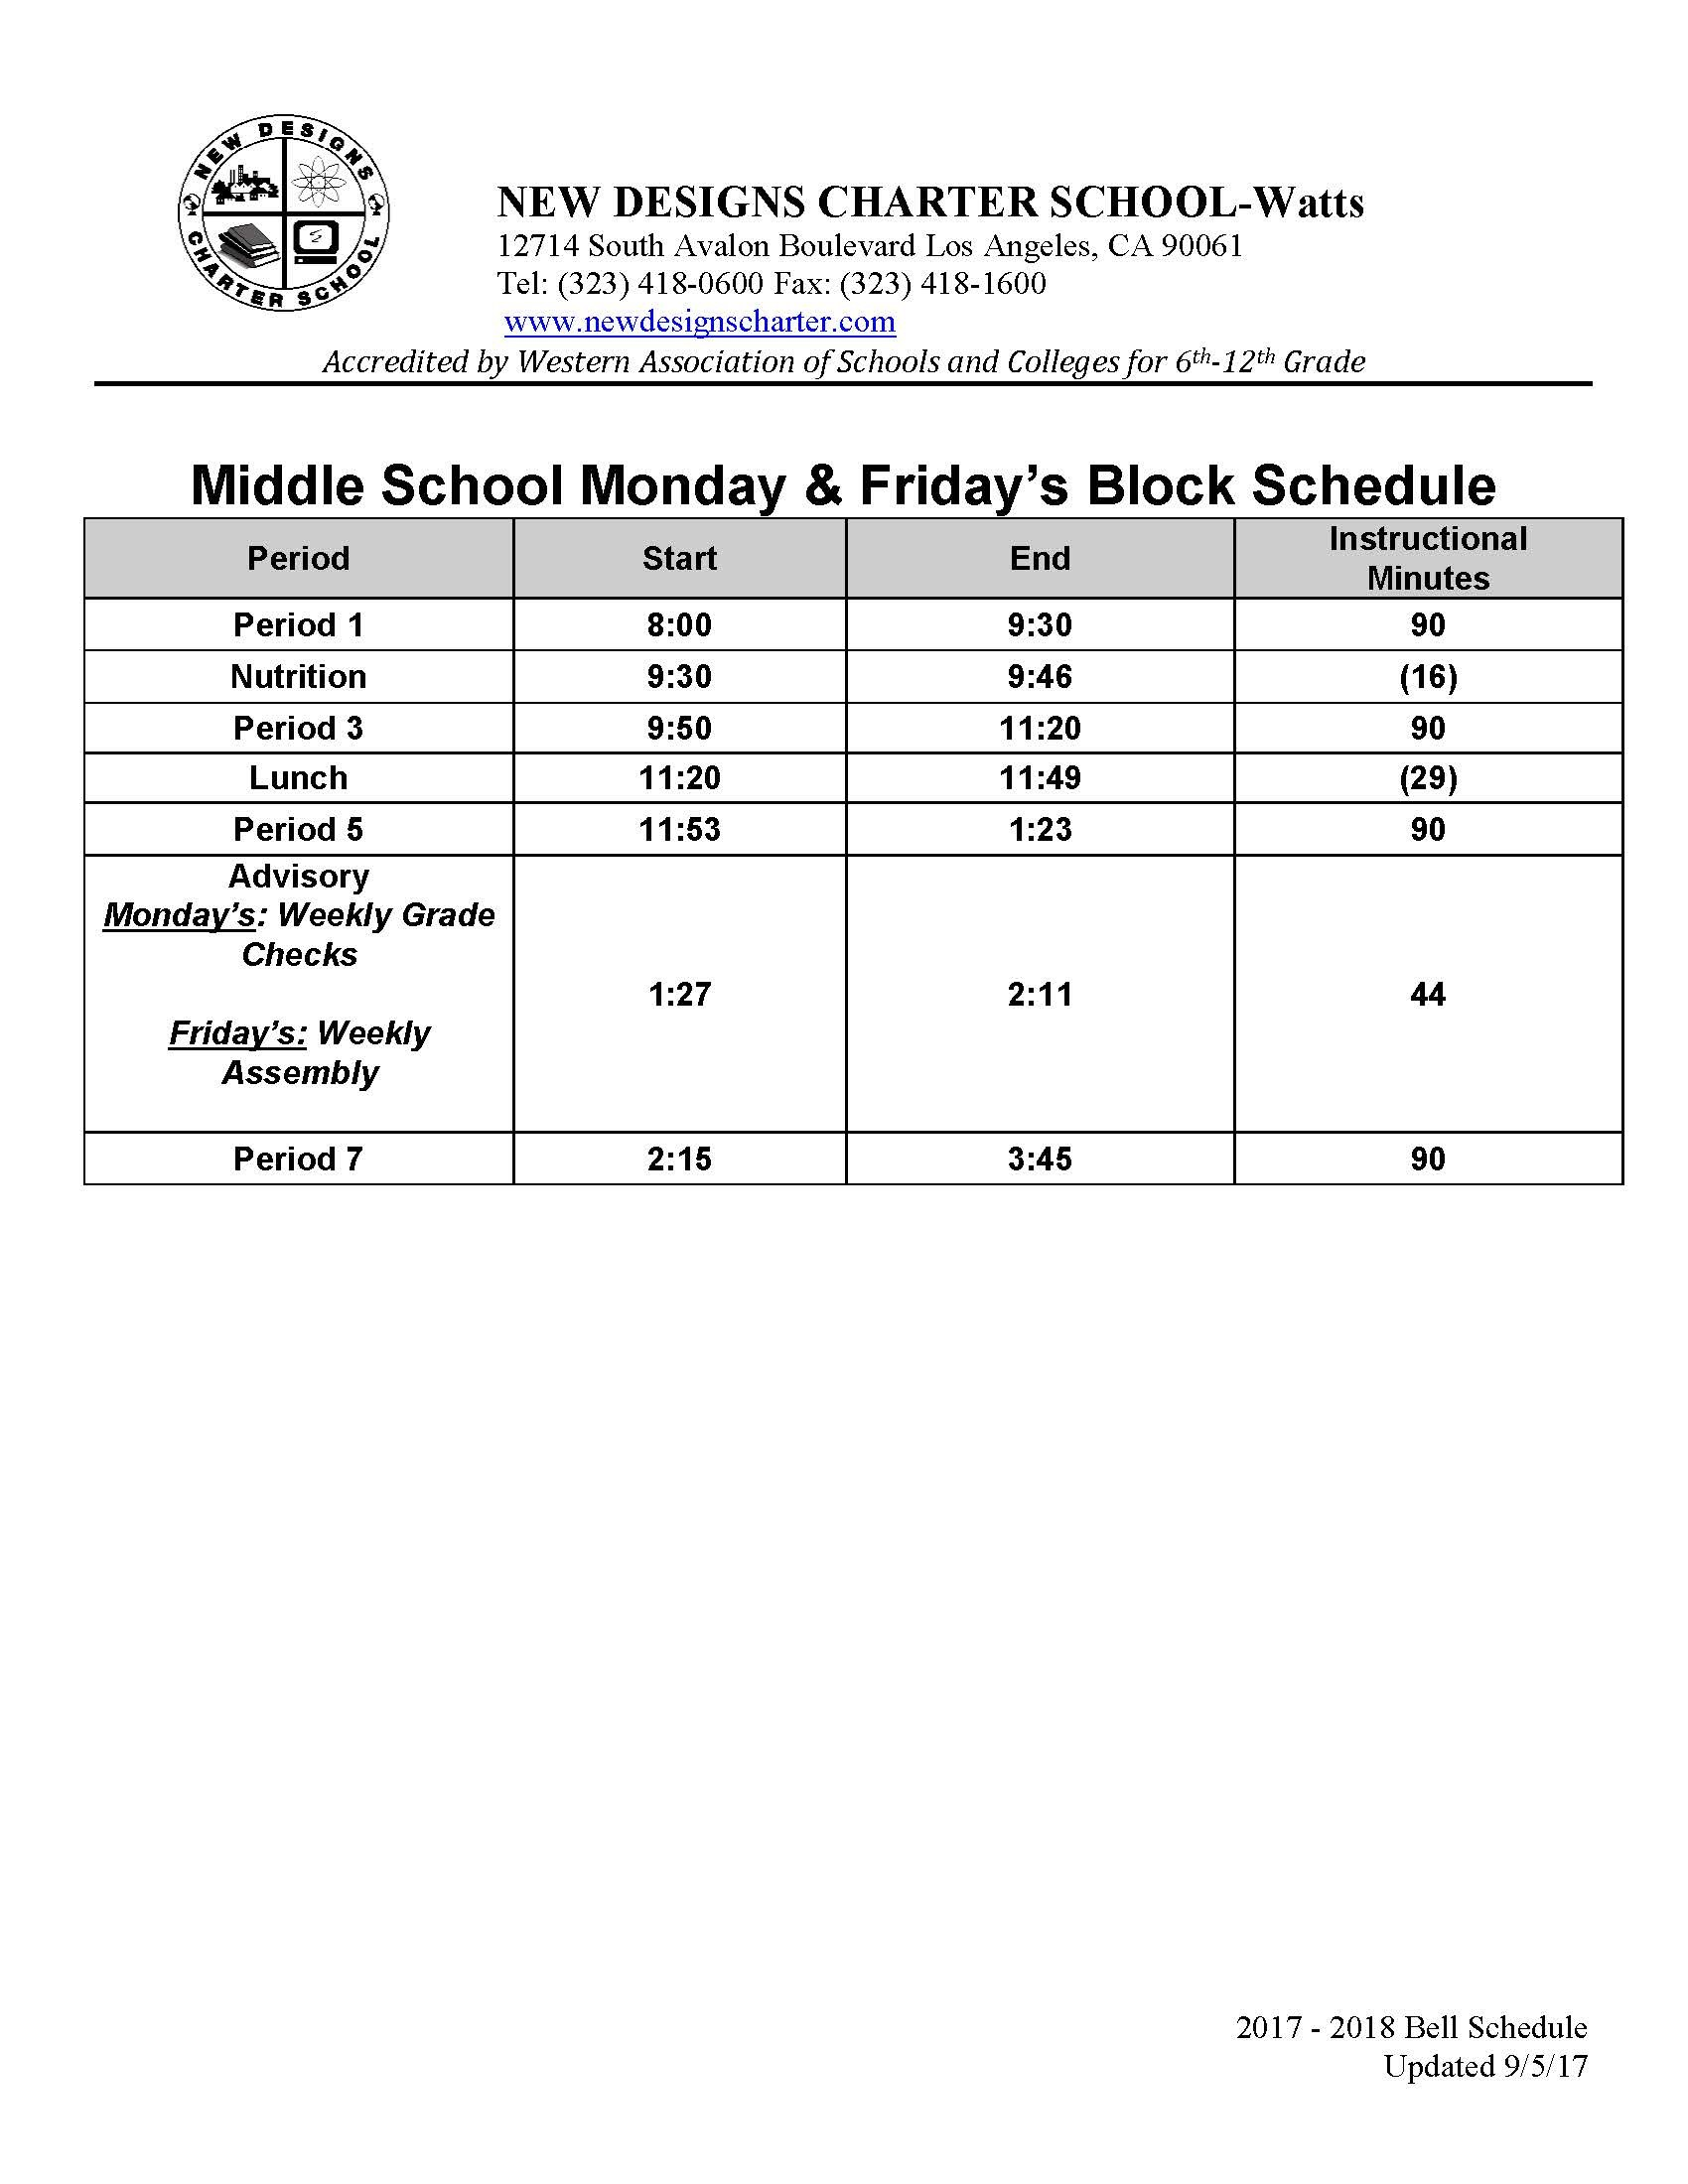 bell schedules for middle school academics new designs charter